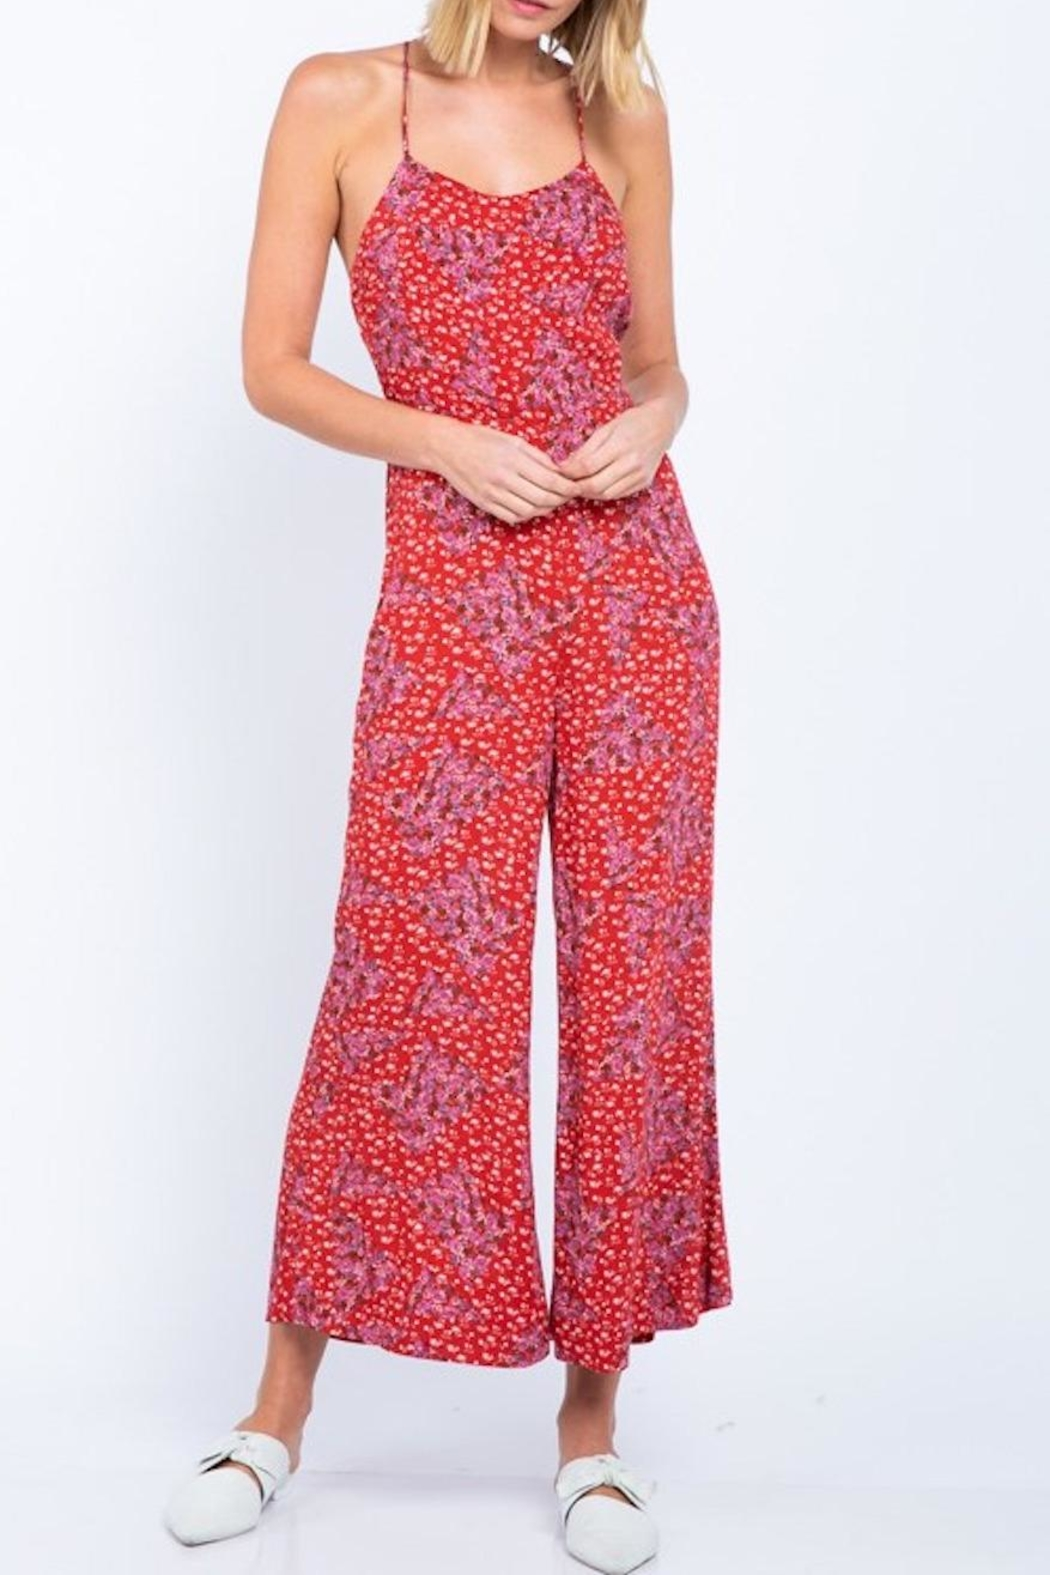 15ac6f0d2483 skylar madison Floral Jumpsuit from New York by Lucia Boutique ...